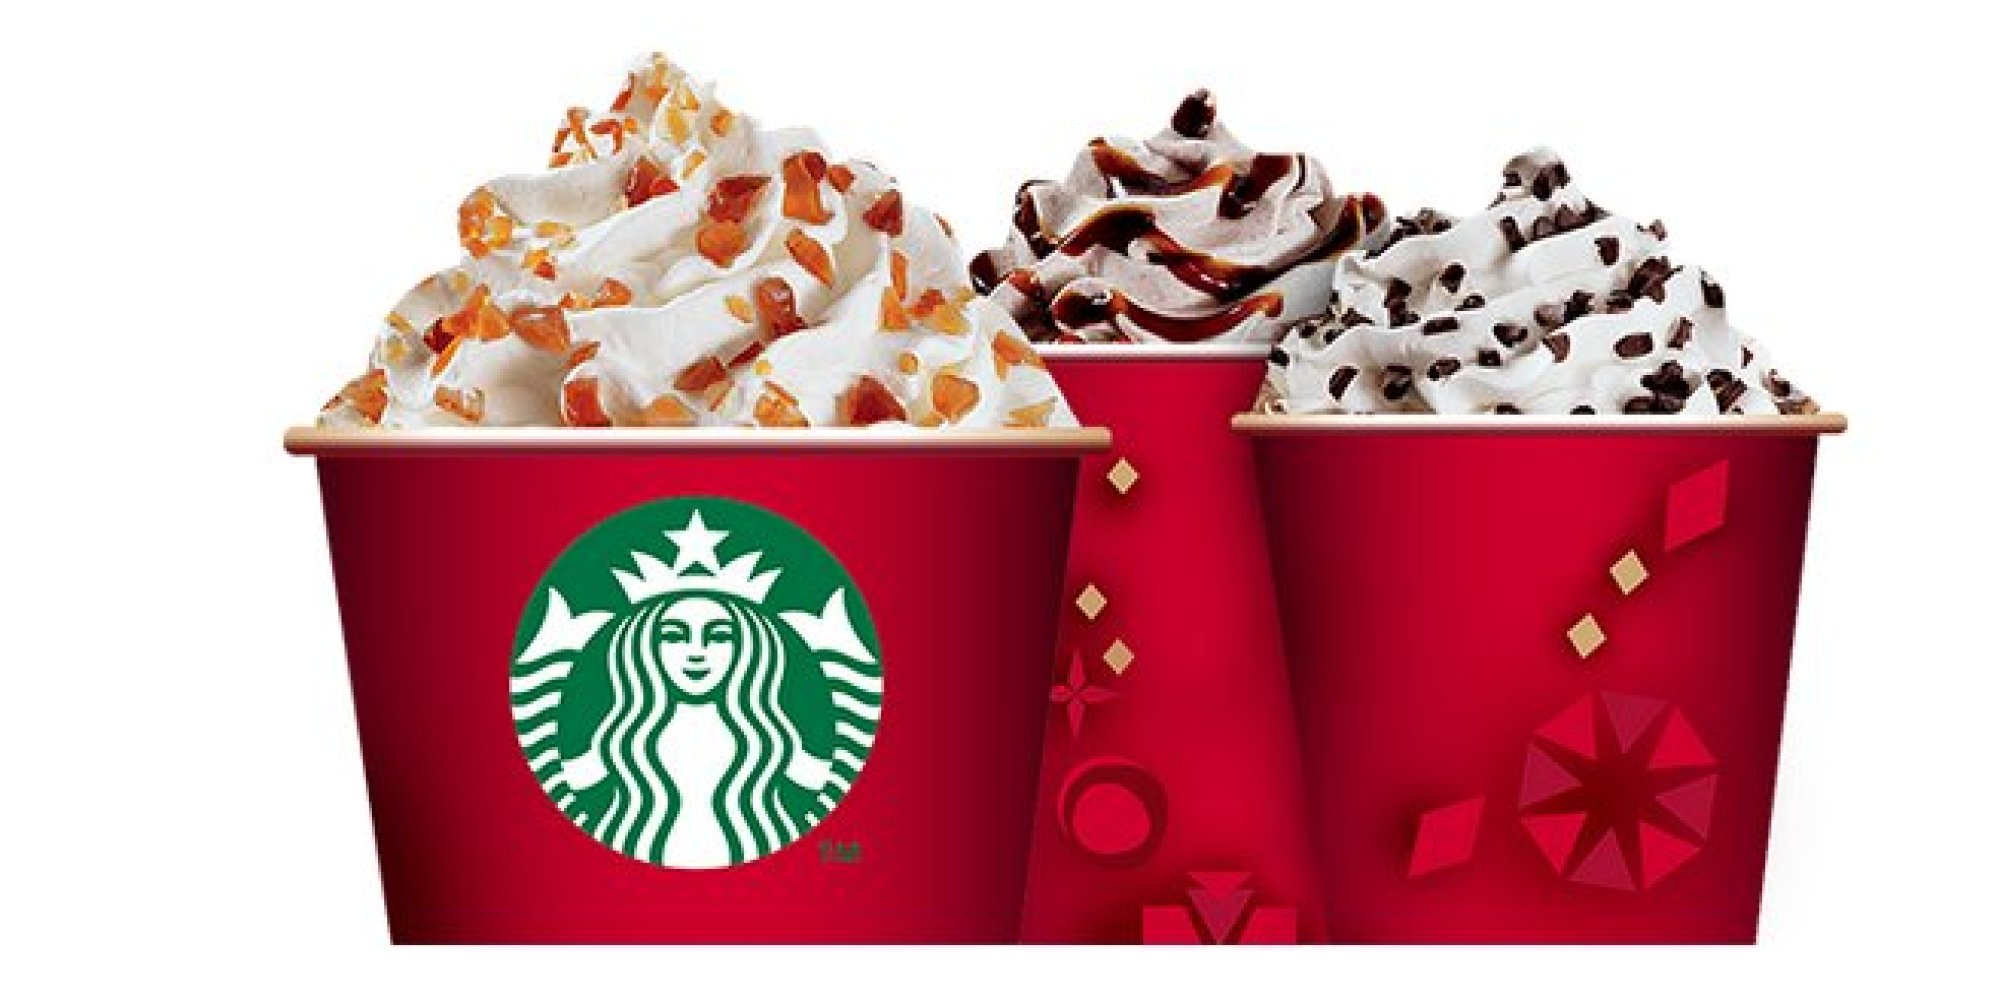 Groupon's Starbucks Deal Gets You $10 For $5 [UPDATED] | HuffPost